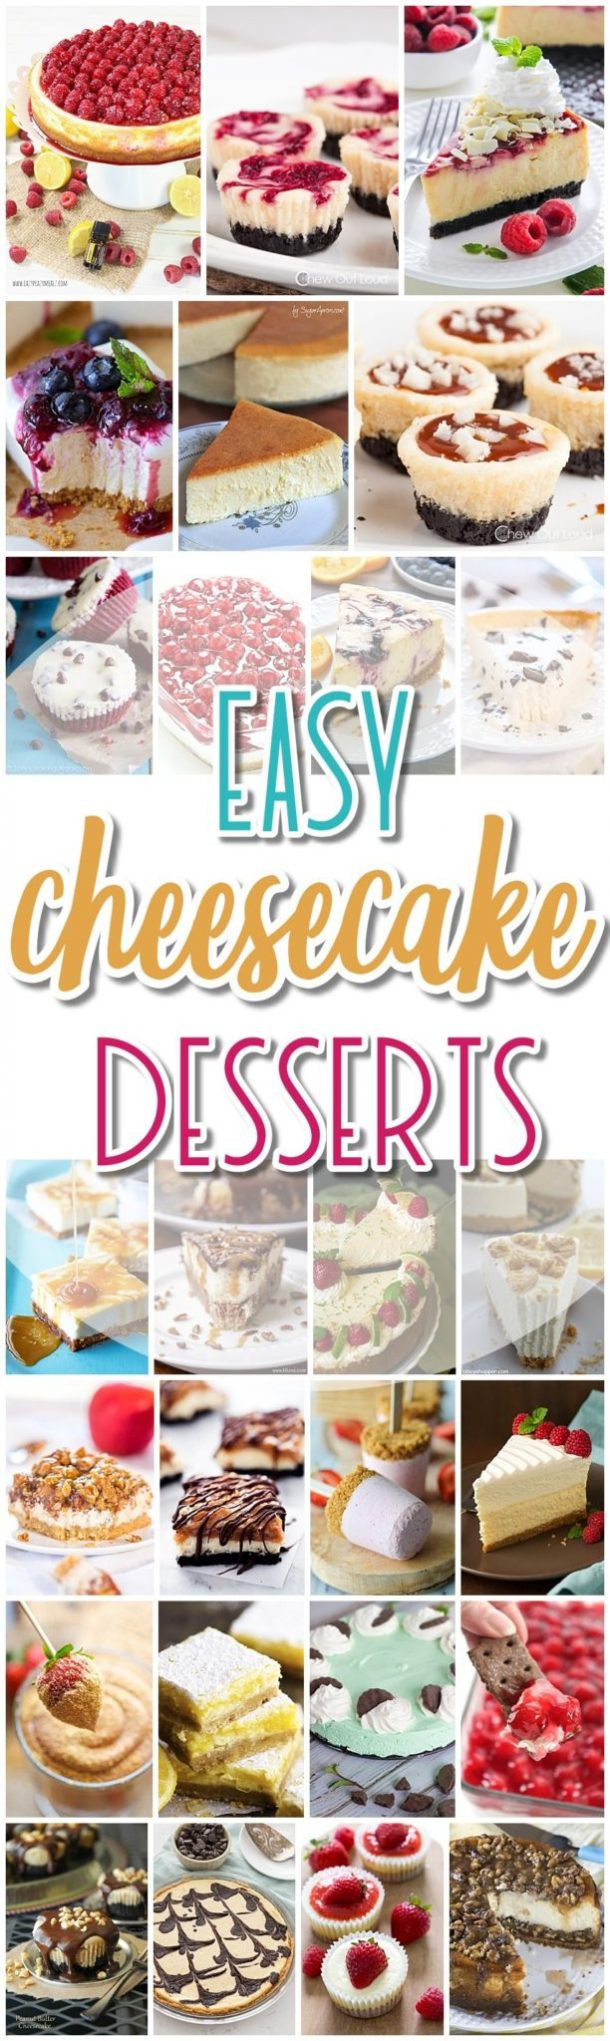 Favorite Easter Desserts  The BEST Cheesecake Recipes – Favorite Easy Party Desserts